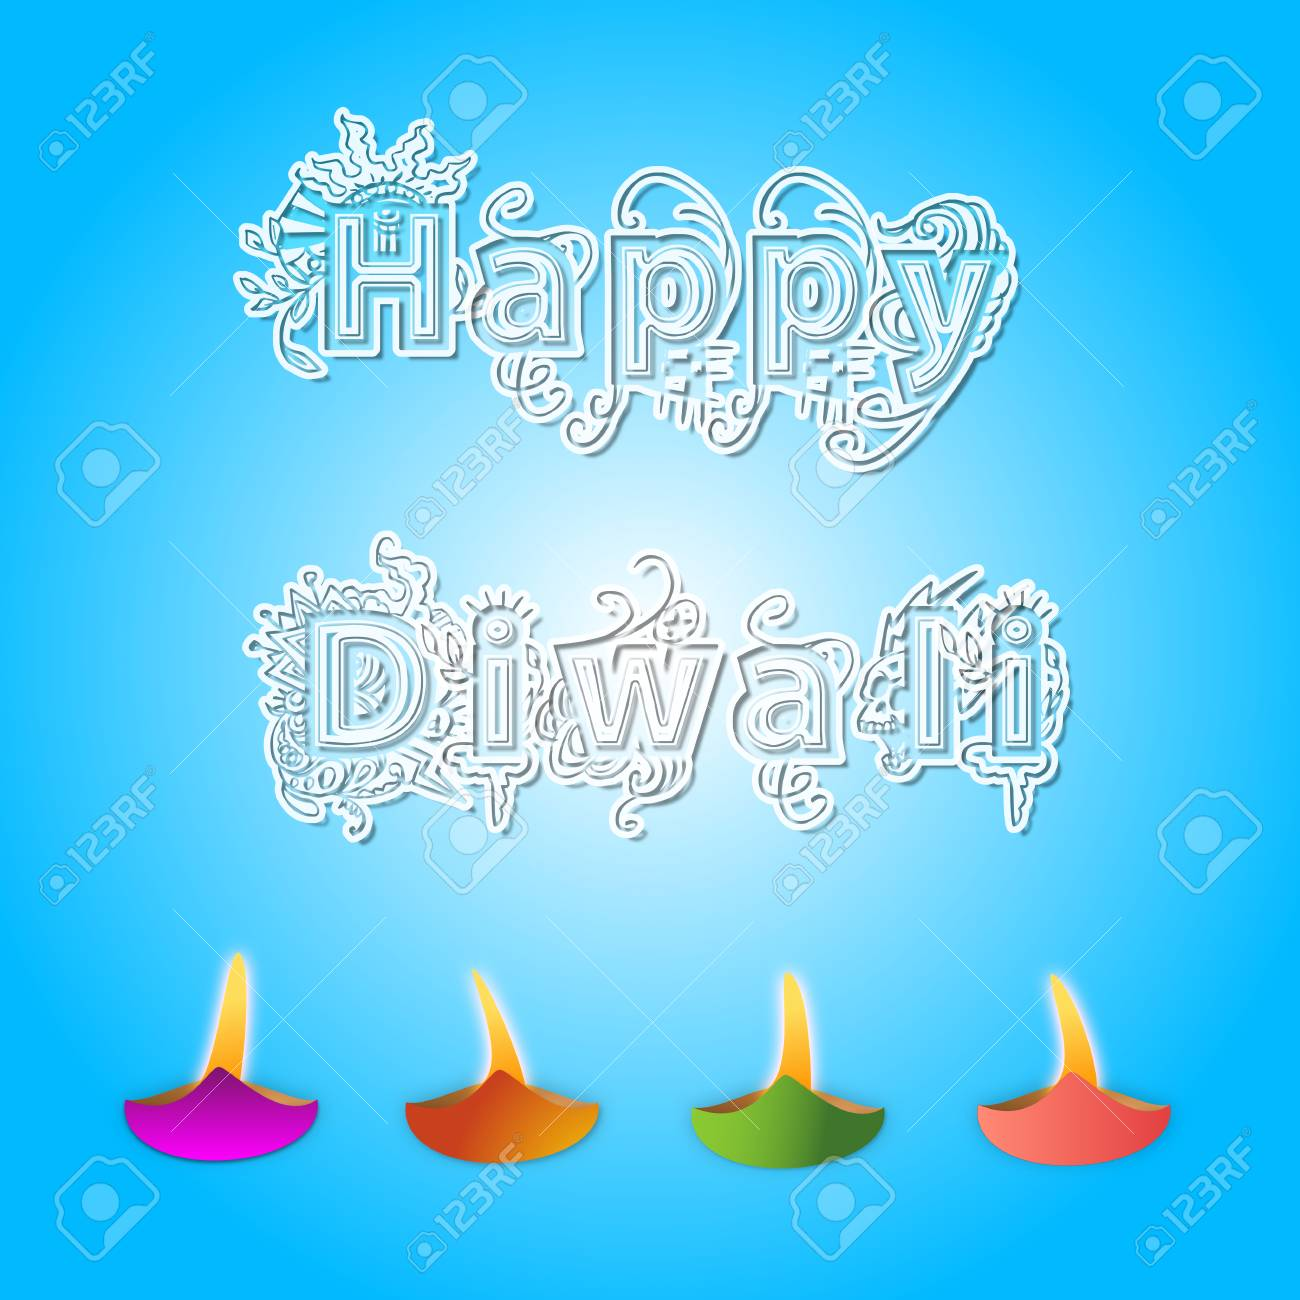 Happy Diwali Greetings With Diwali Lights Stock Photo Picture And